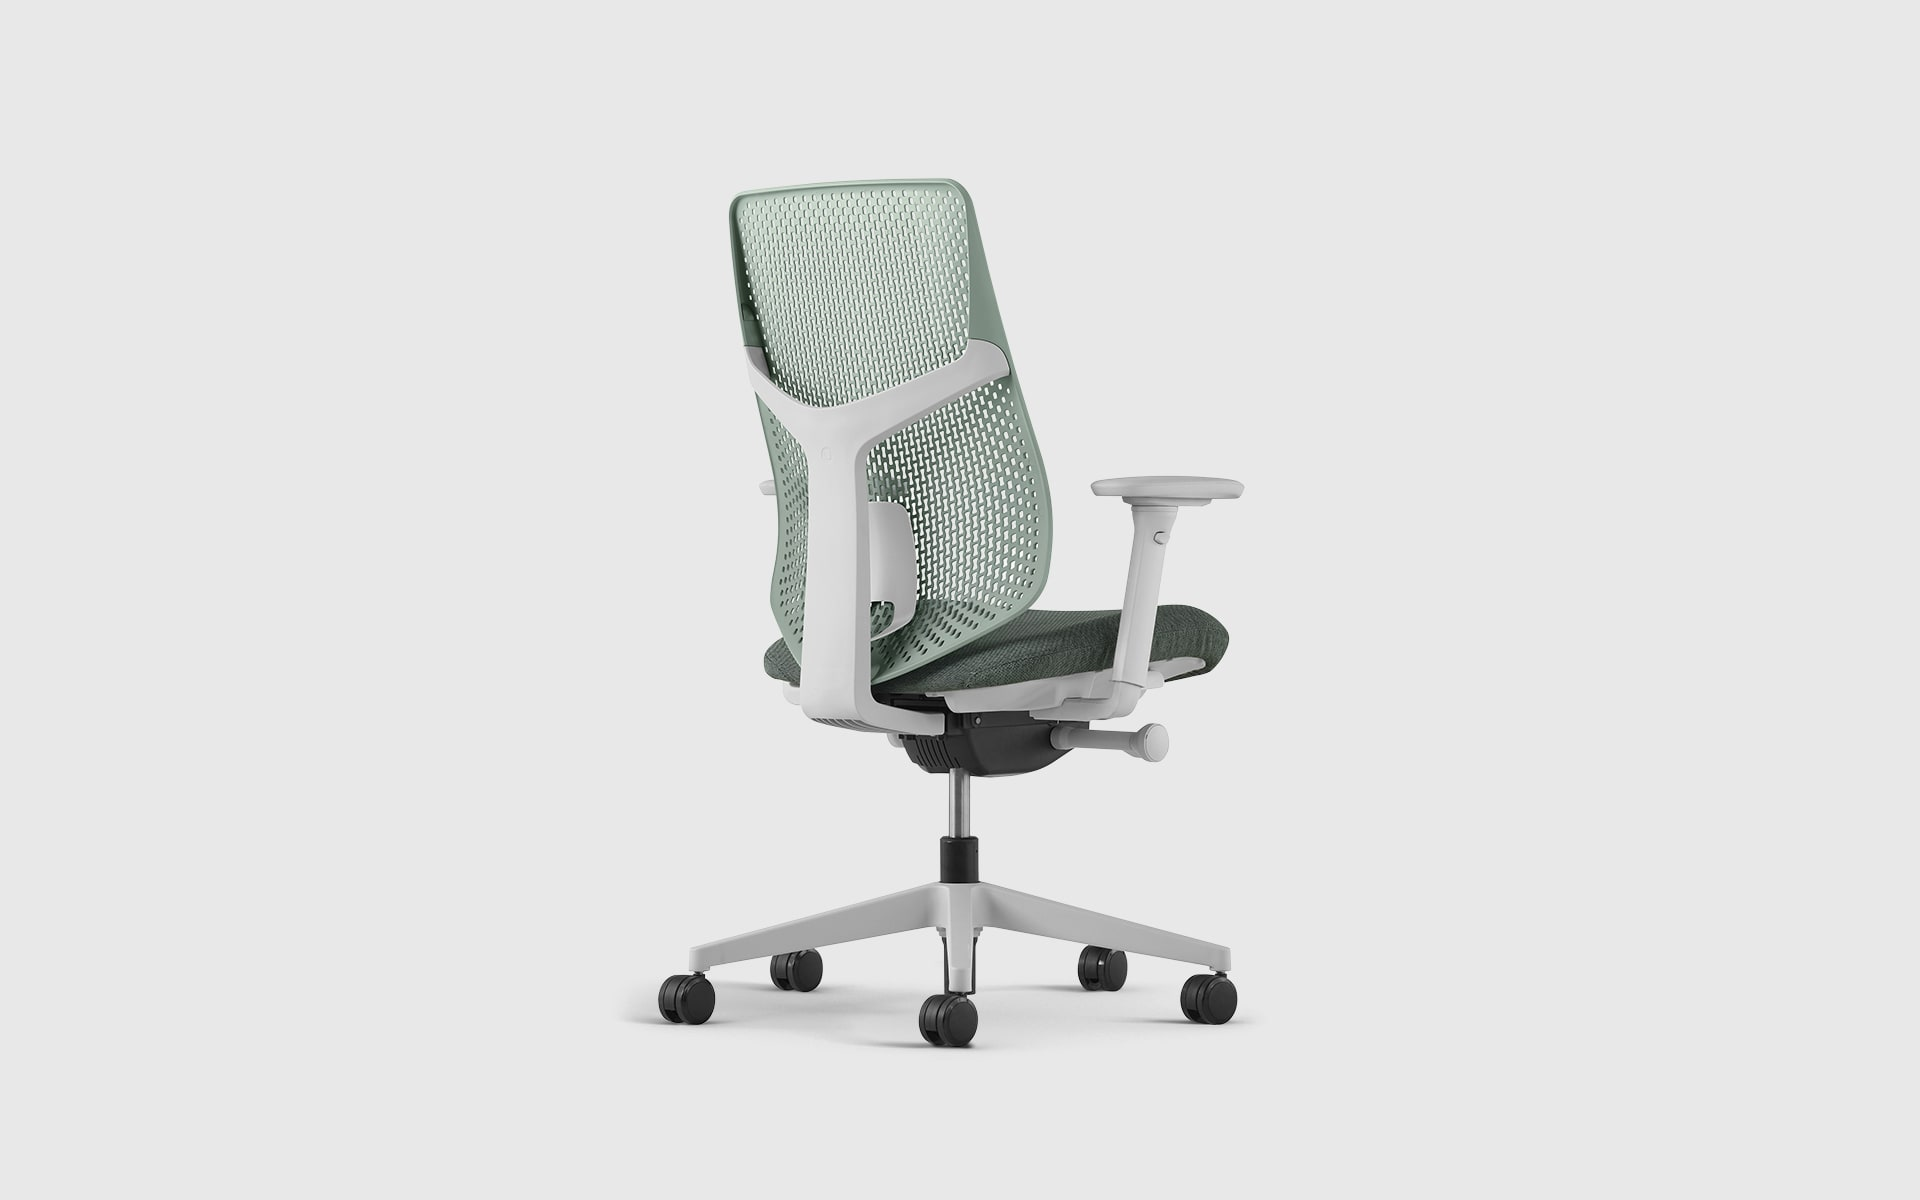 A Hermann Miller Verus office chair by ITO Design with dusty green perforated backrest and seat cushion